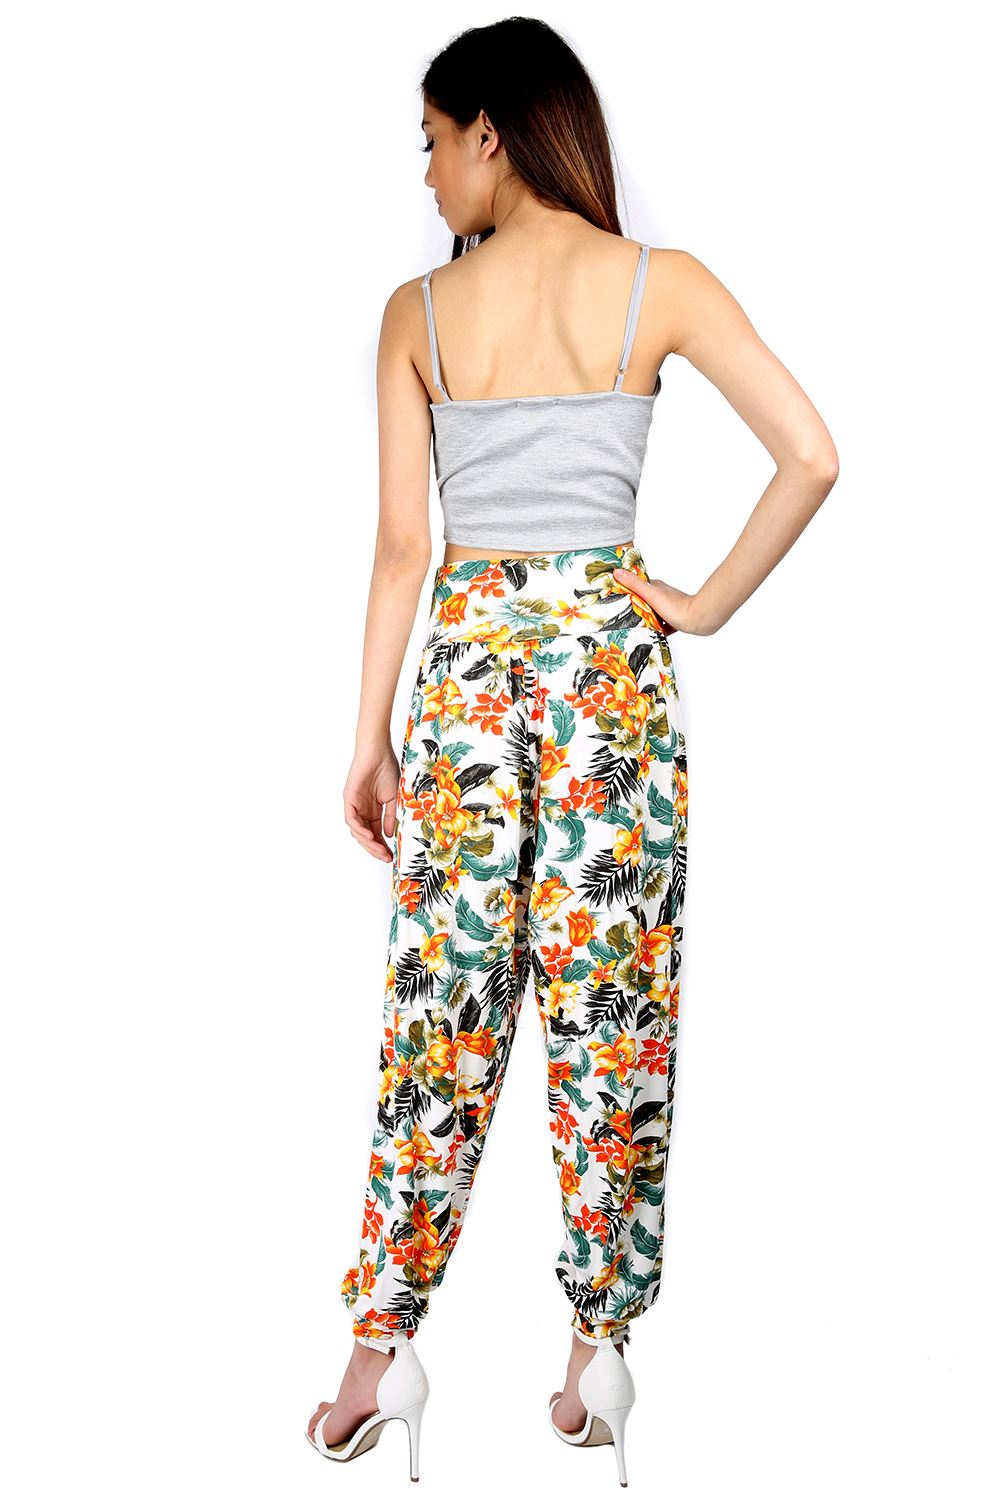 Awesome Aliexpresscom  Buy Brand Design Vintage Floral Printed Harem Pants Women Ni